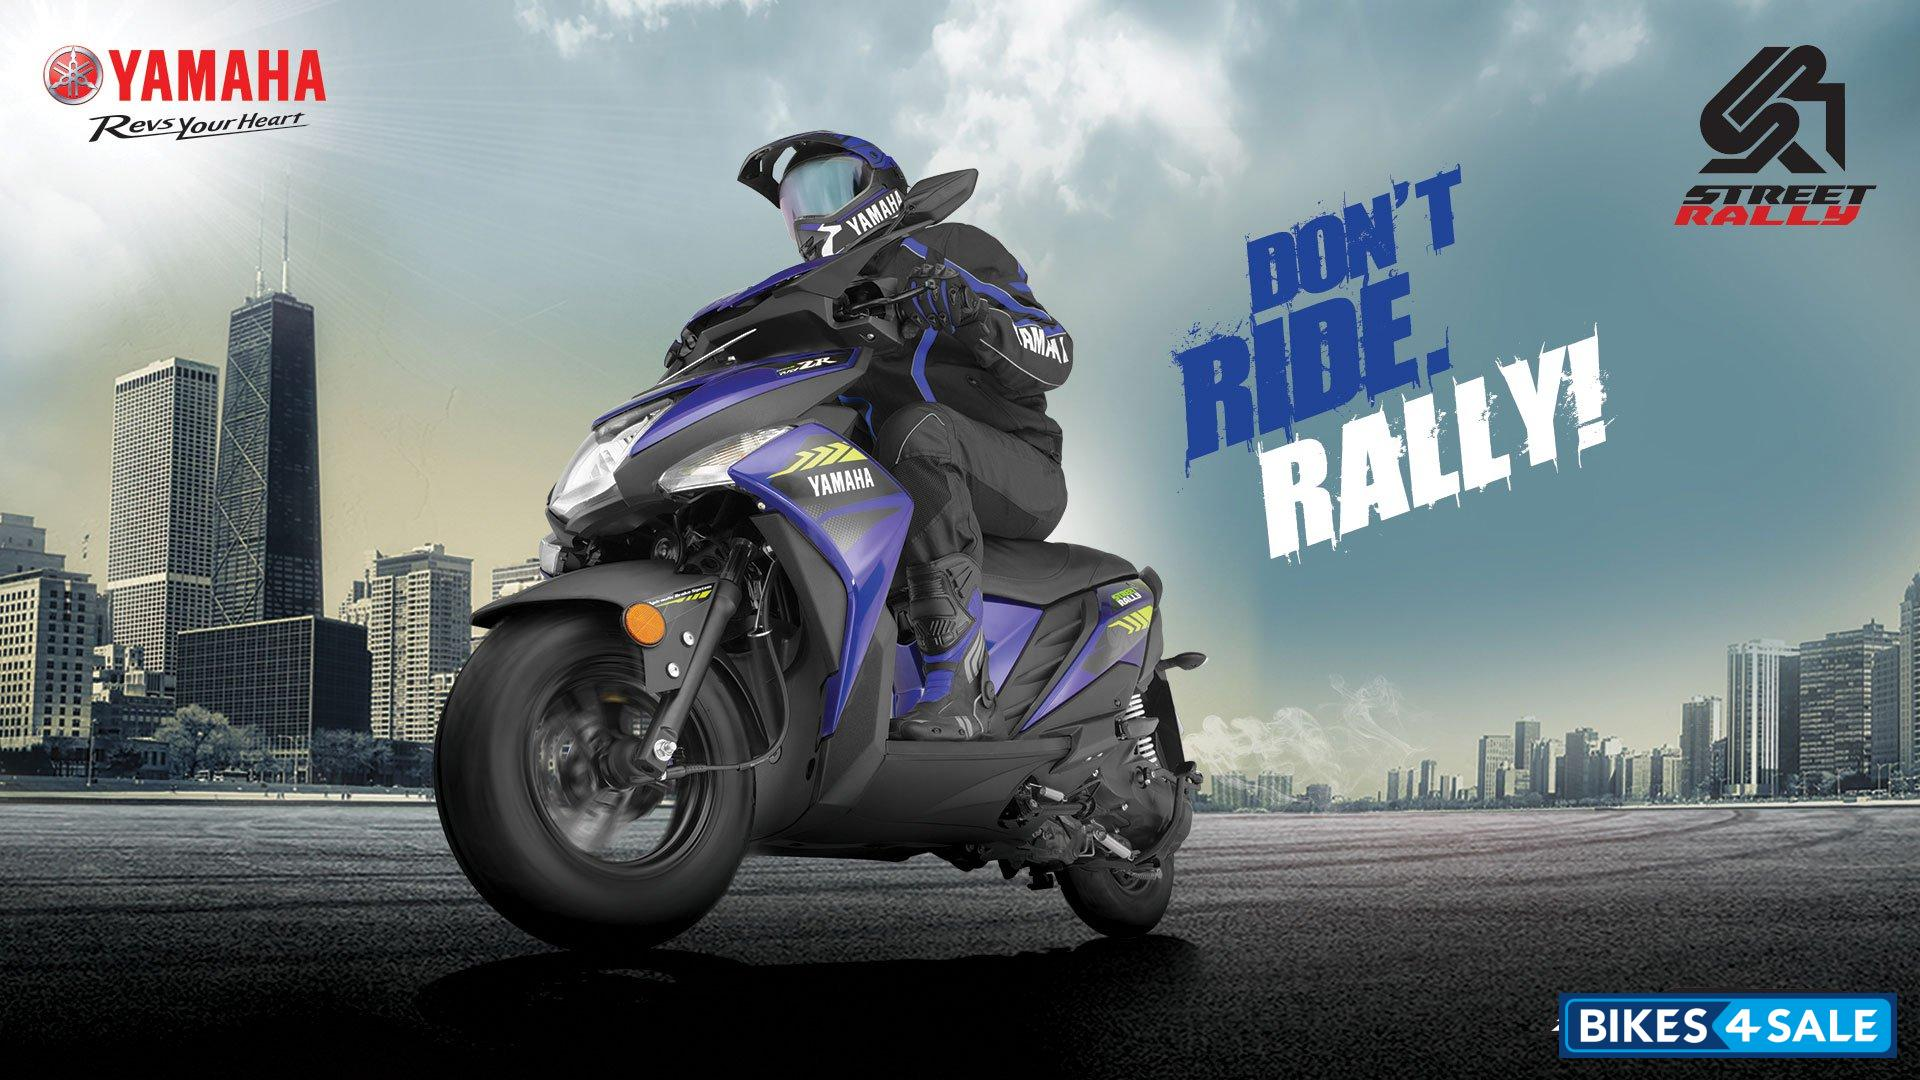 Yamaha Cygnus Ray ZR Street Rally